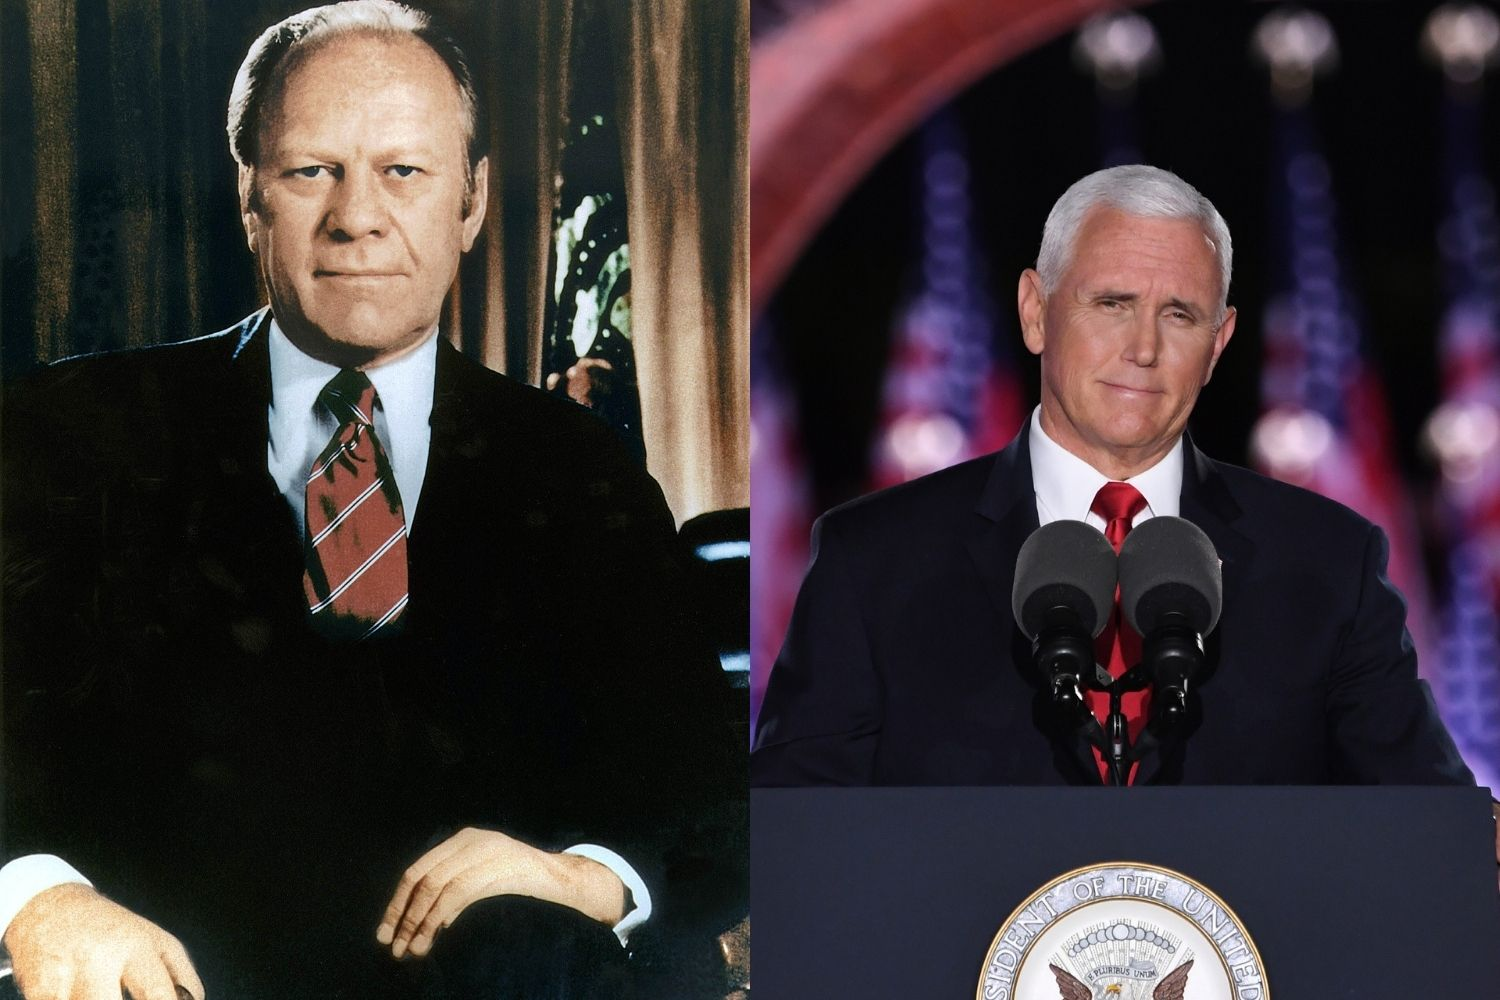 Gerald Ford, links, en Mike Pence, rechts. Foto: ANP